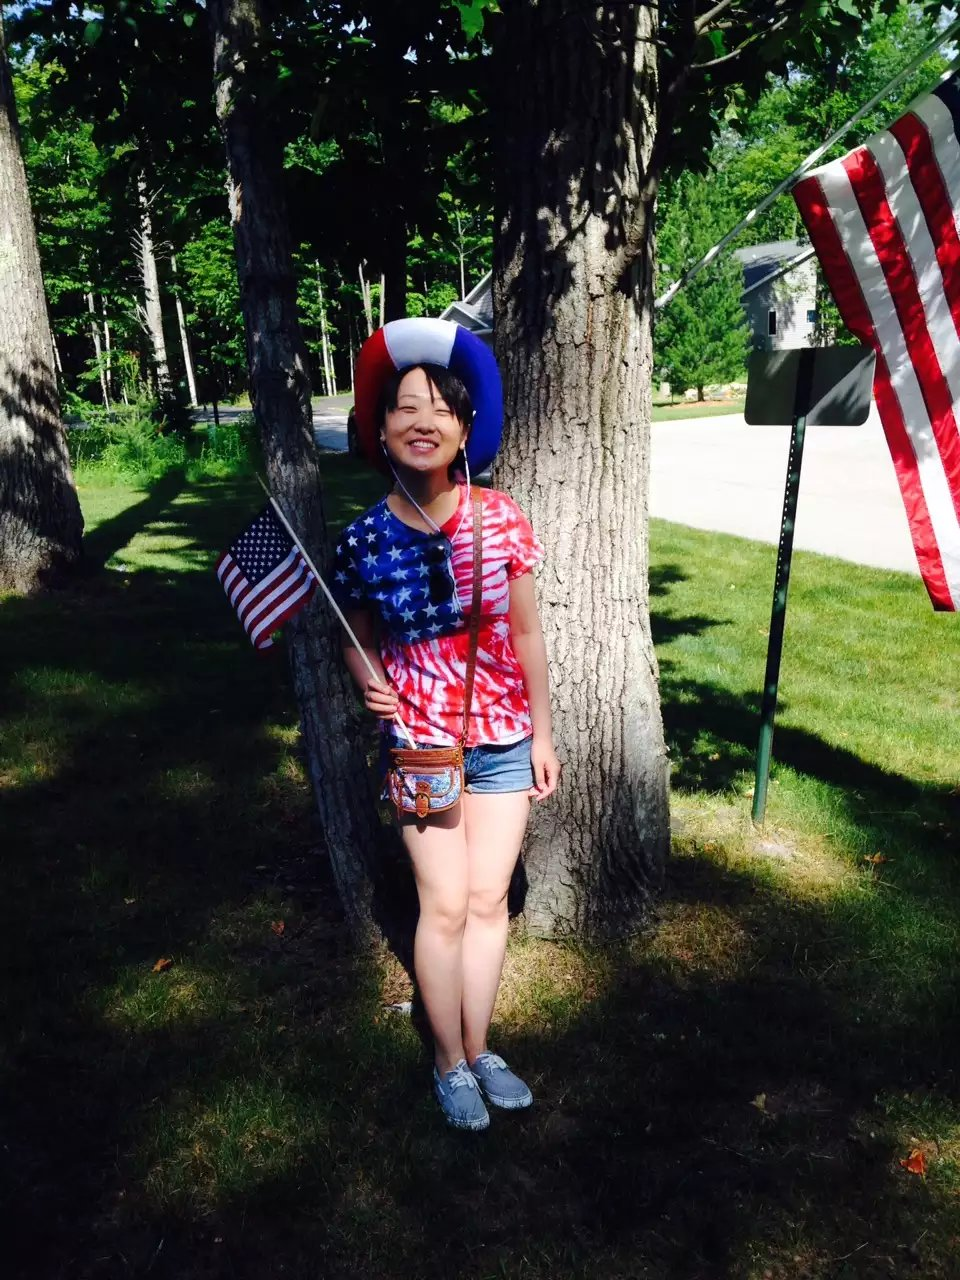 Wen celebrating the 4th of July in Baileys Harbor, Wisconsin.